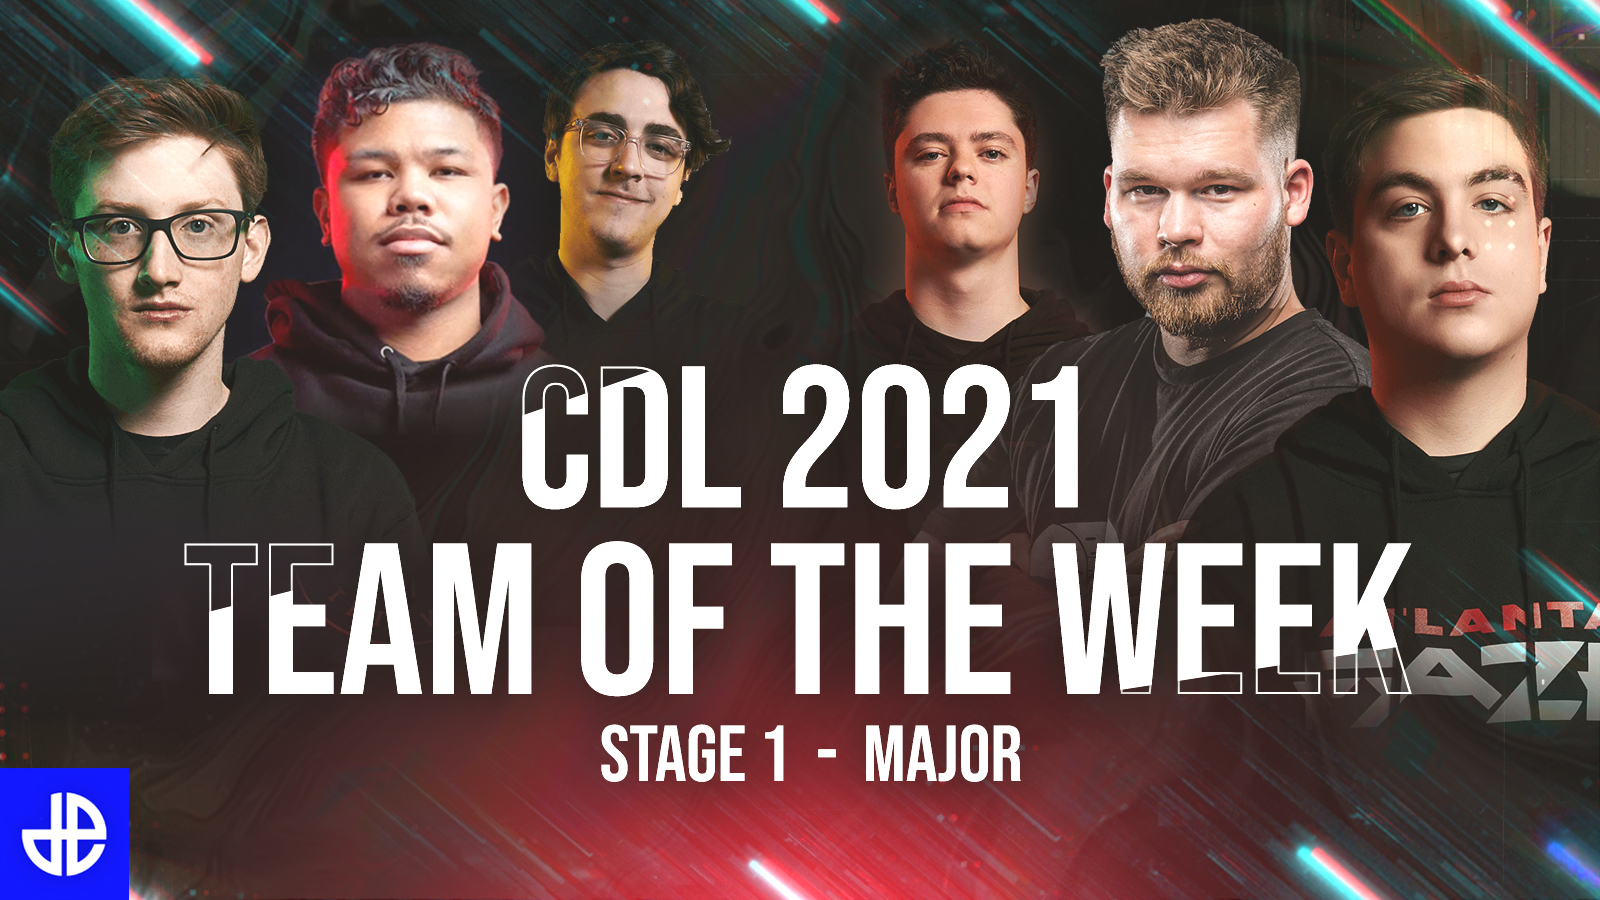 CDL 2021 Team of the Week after Stage 1 Major